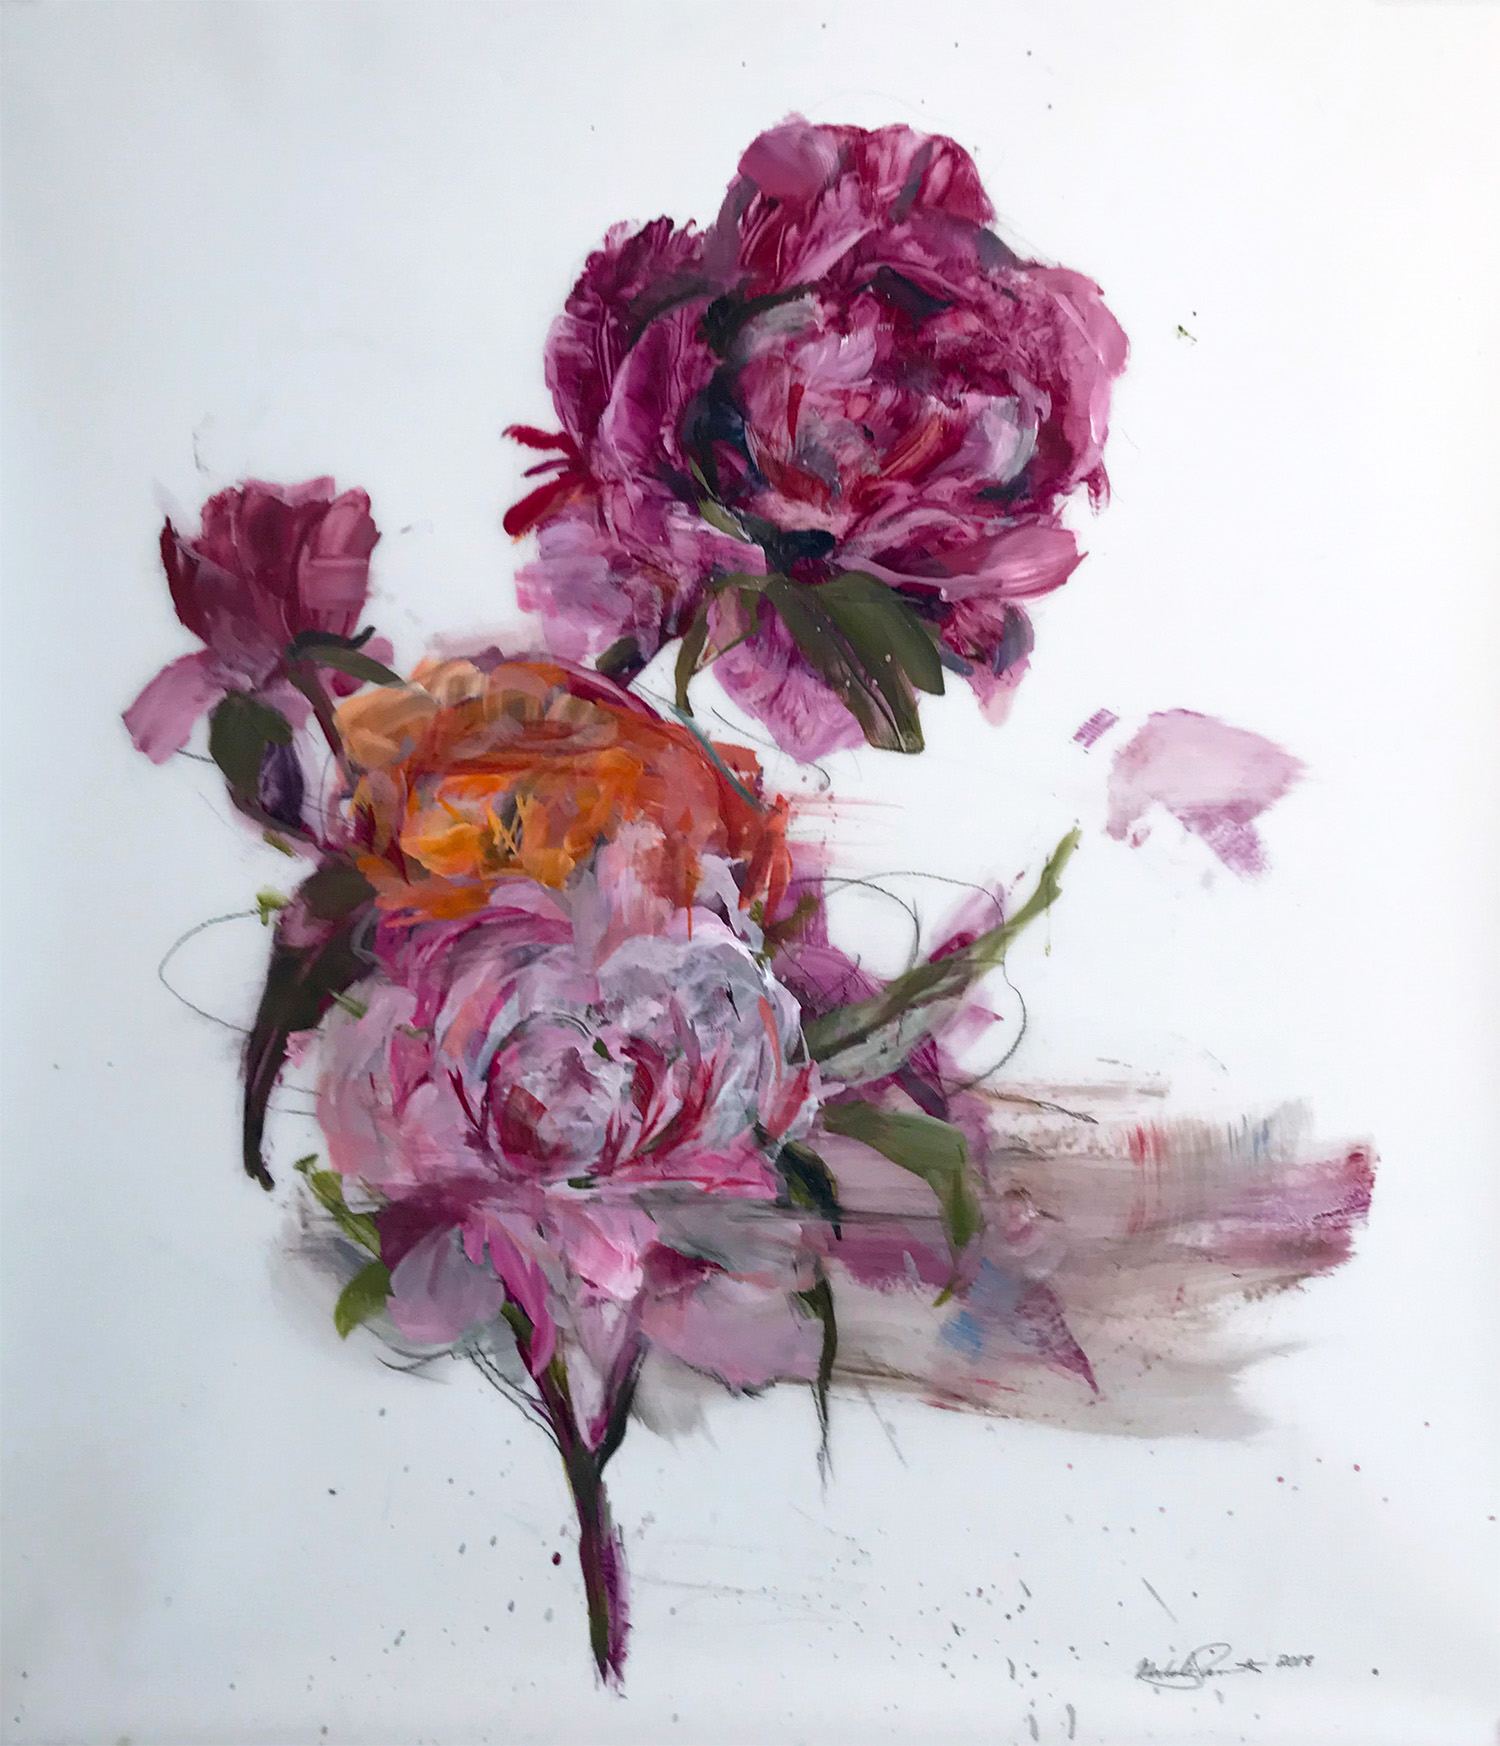 Madeleine Lamont, Pink Bouquet with Orange, oil on mylar, 41 x 36 in.